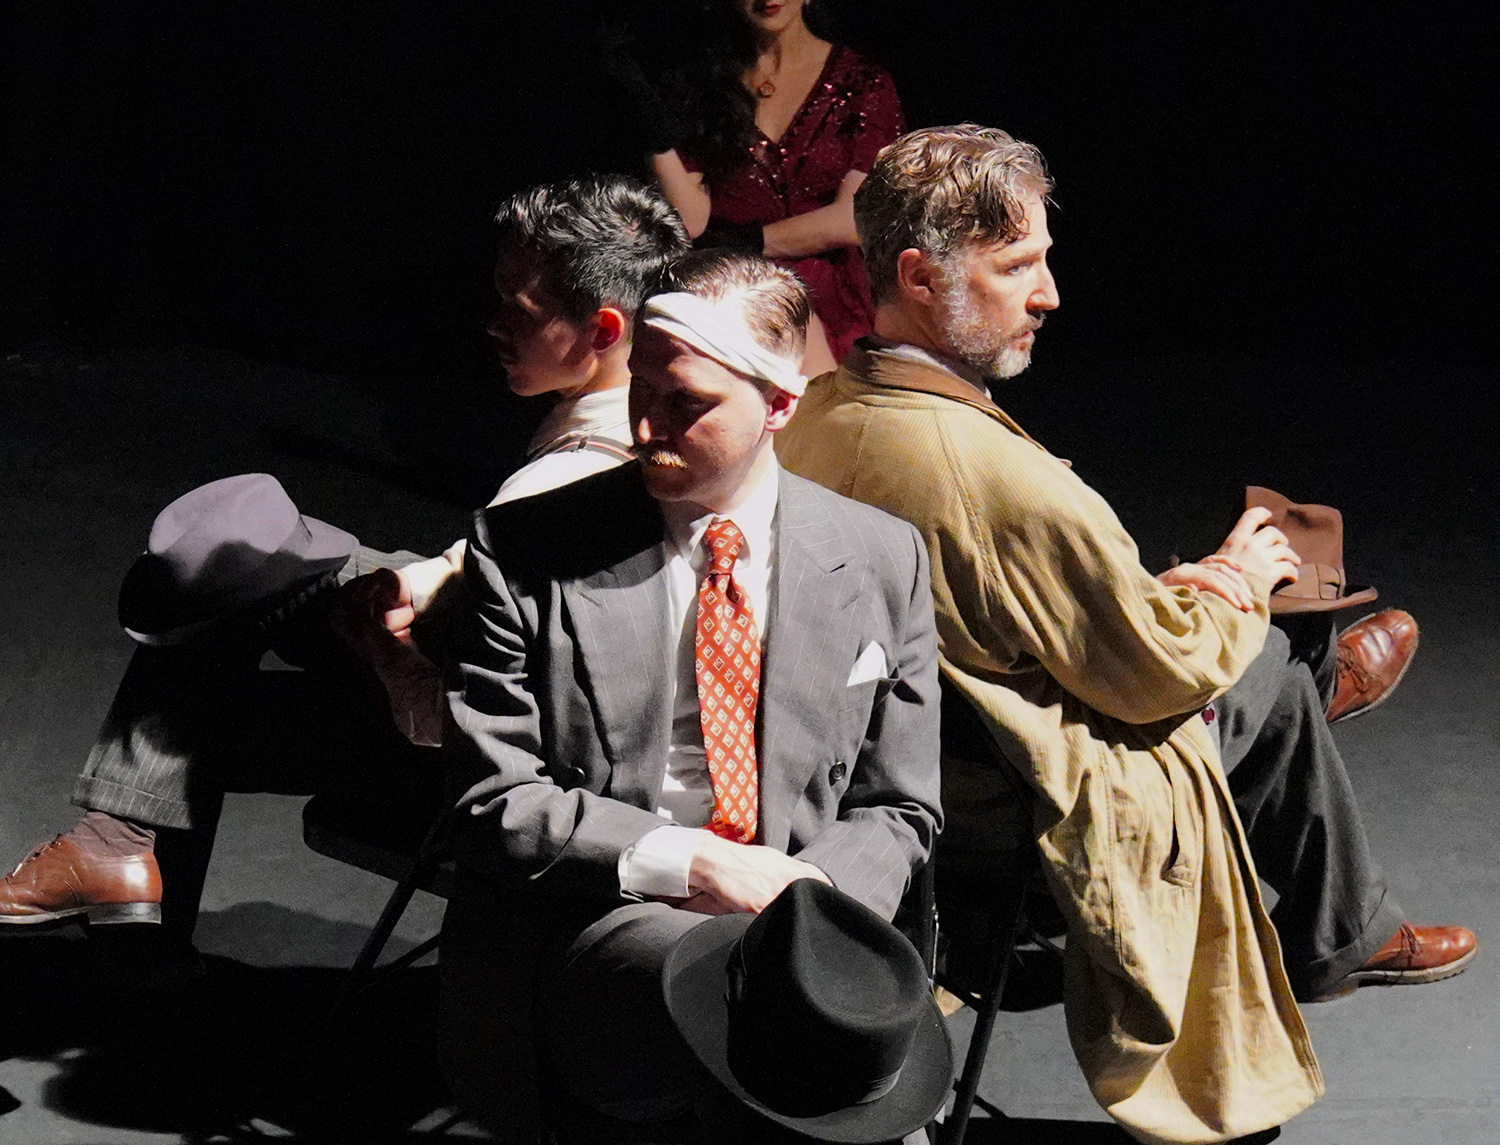 As Detective 2, with Nik Duggan as Detective 1, Shane Jensen as Detective 3, and Chelsey Ng as Effie in WITNESS Immersive Theater's NOIRTOWN at Rave Theater Festival (Teatro LATEA.) Photo by Carly Jane Hoogendyk.